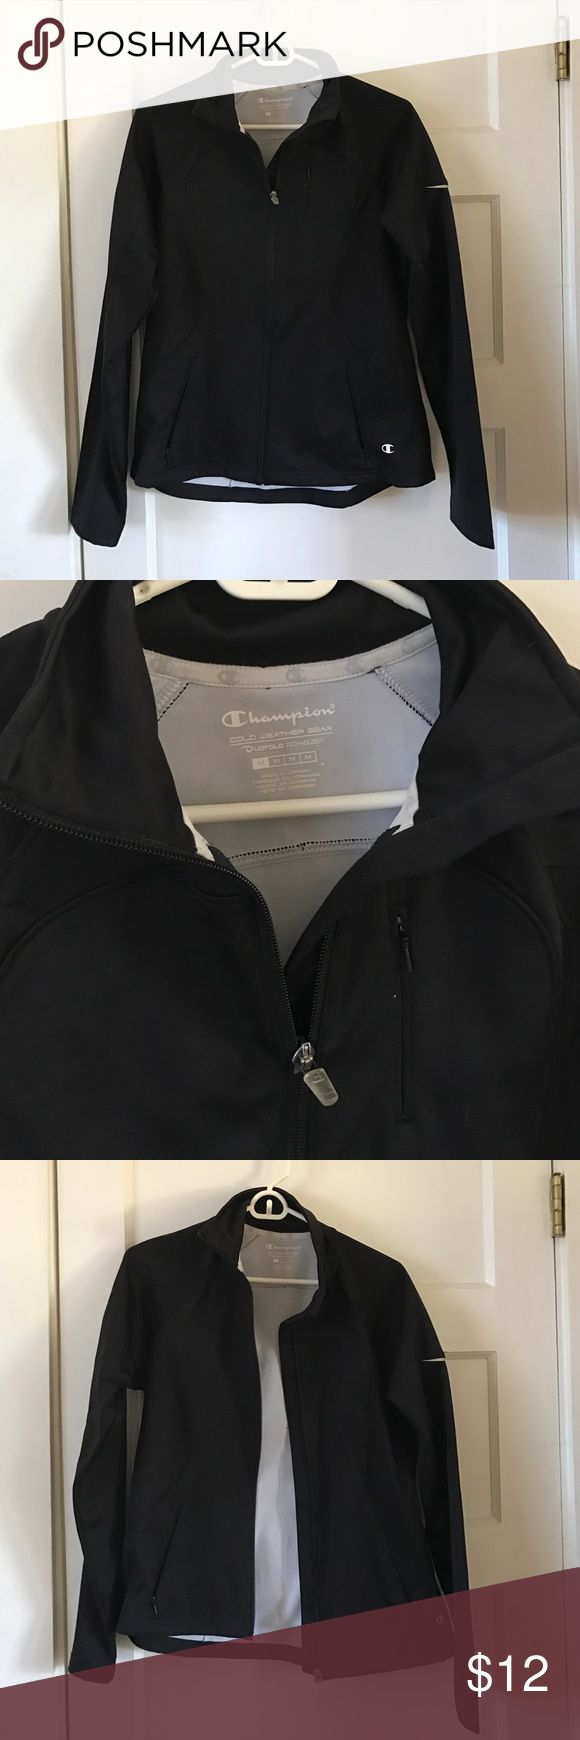 Champion Cold Weather Gear jacket Black Champion brand zip up jacket. The pockets zip up as well. Only worn a couple times. Champion Jackets & Coats